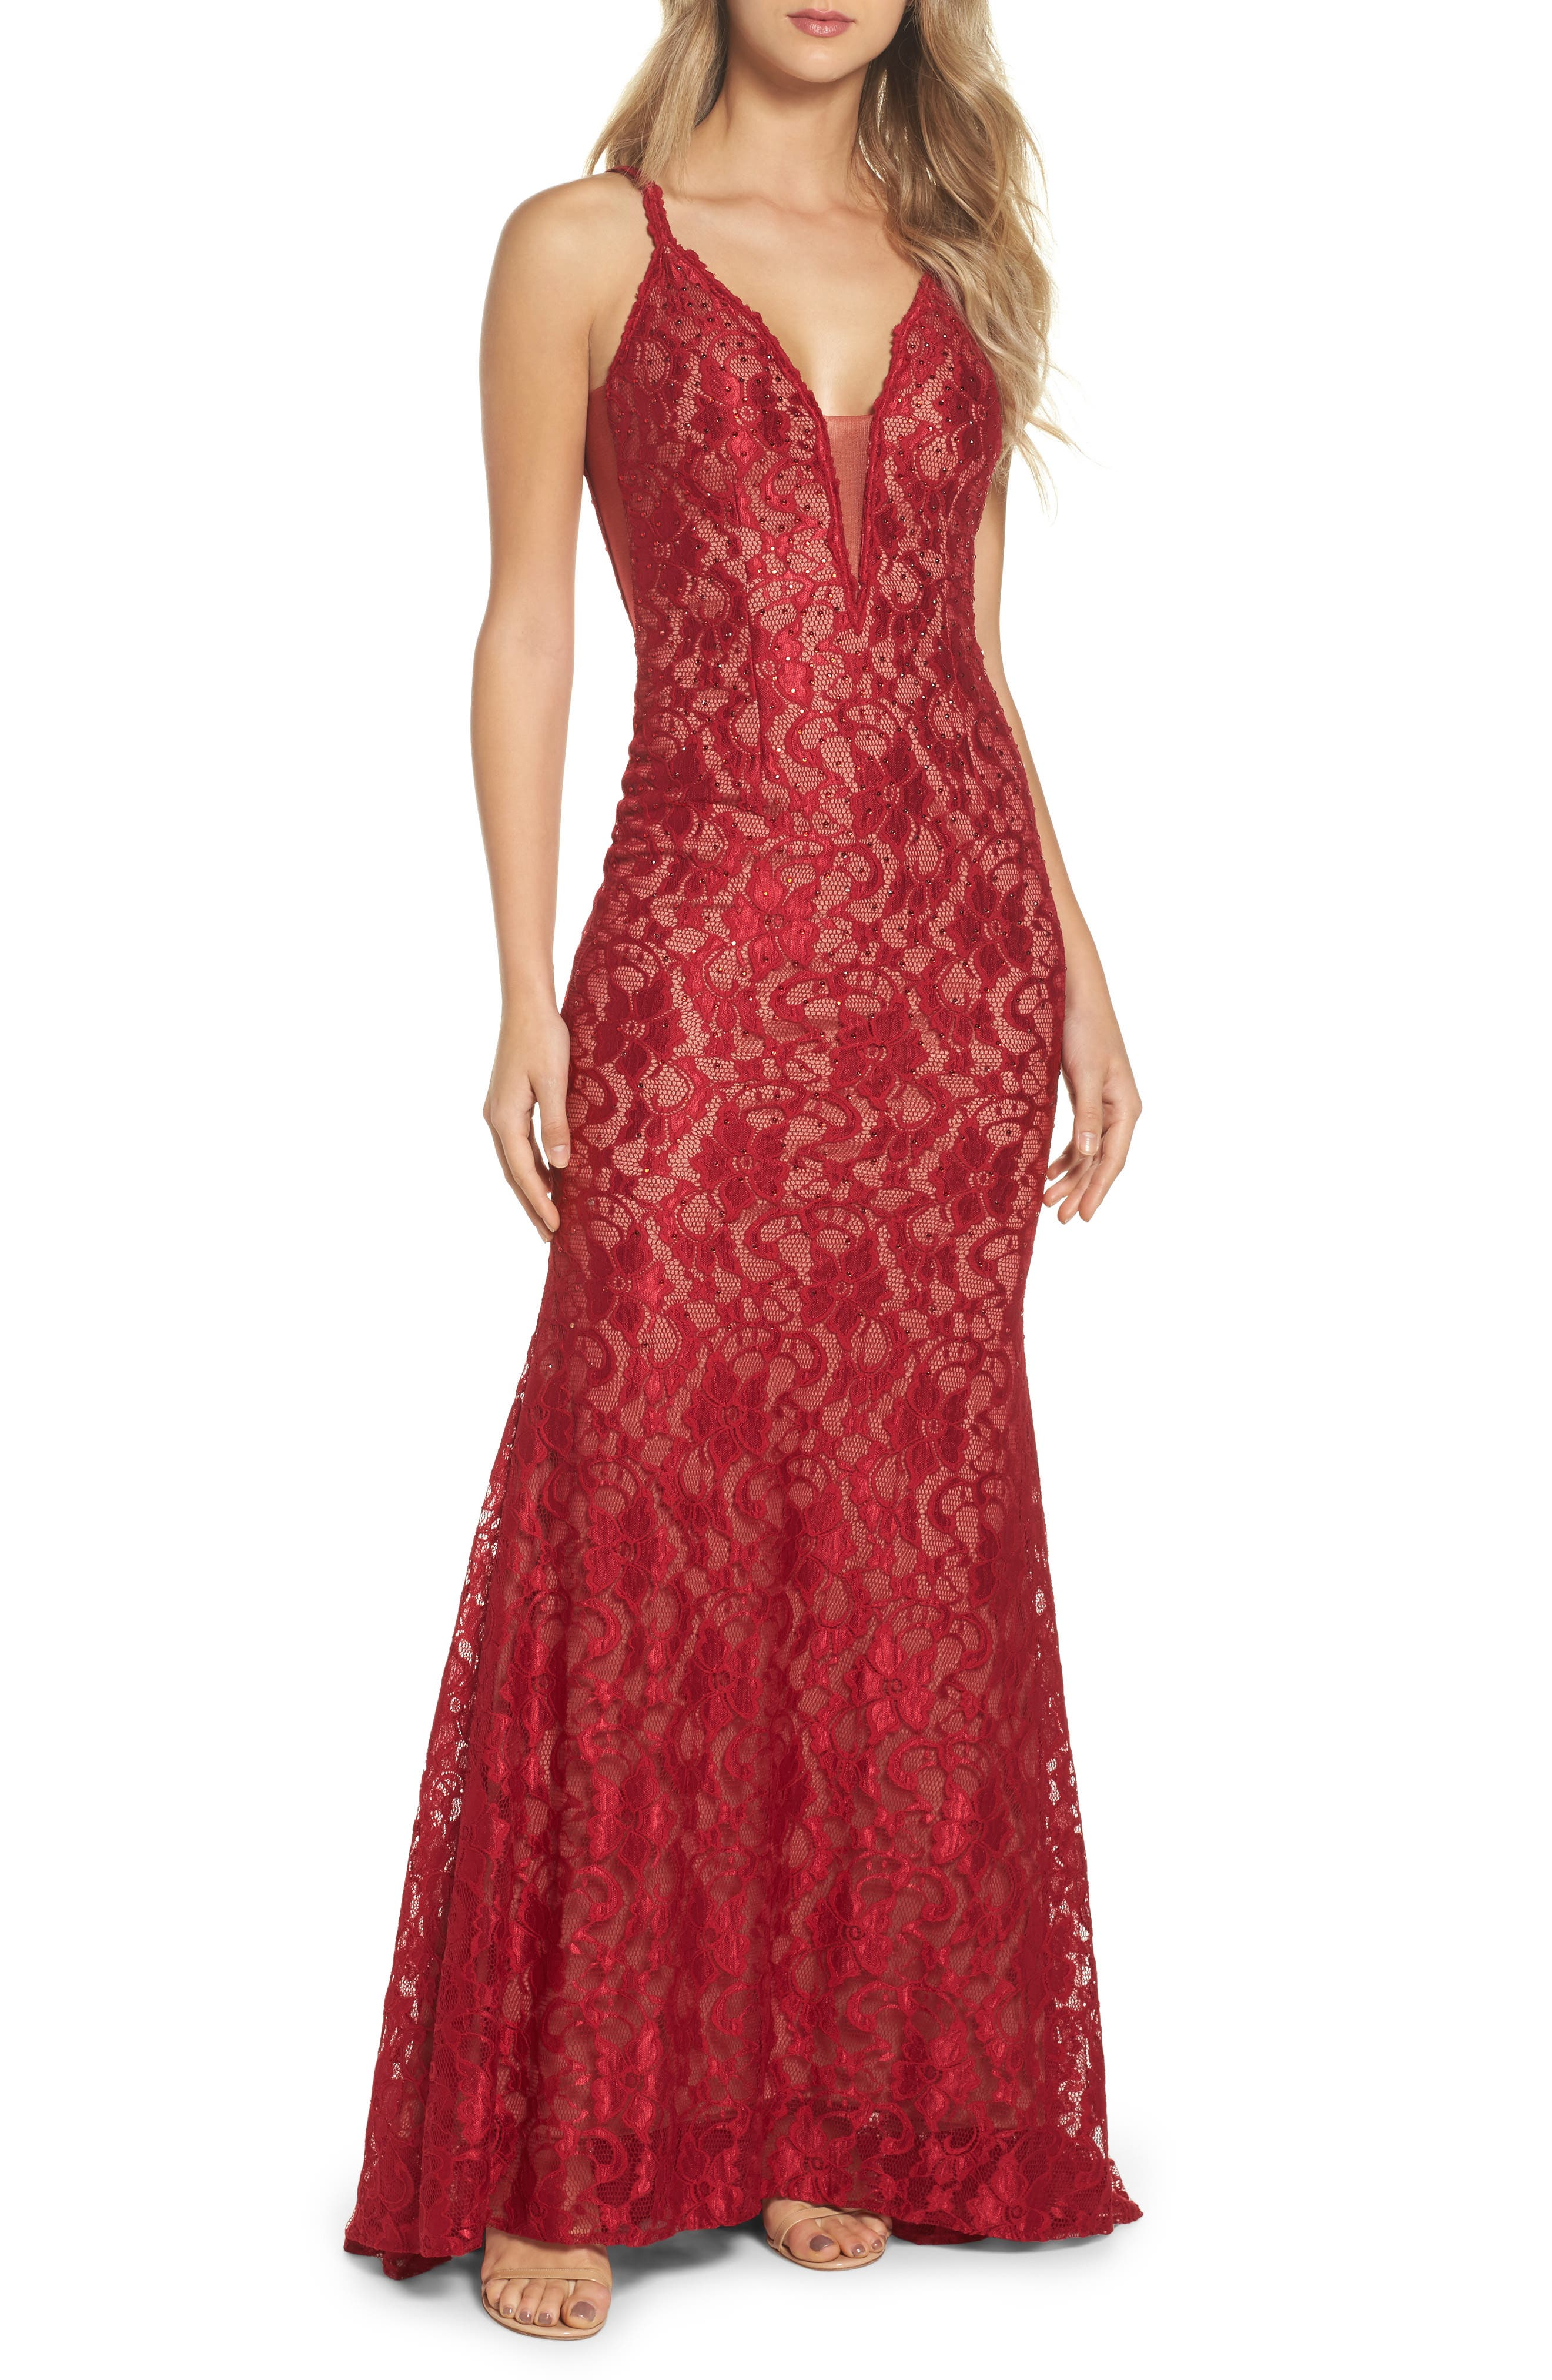 Xscape Plunging Beaded Lace Mermaid Gown